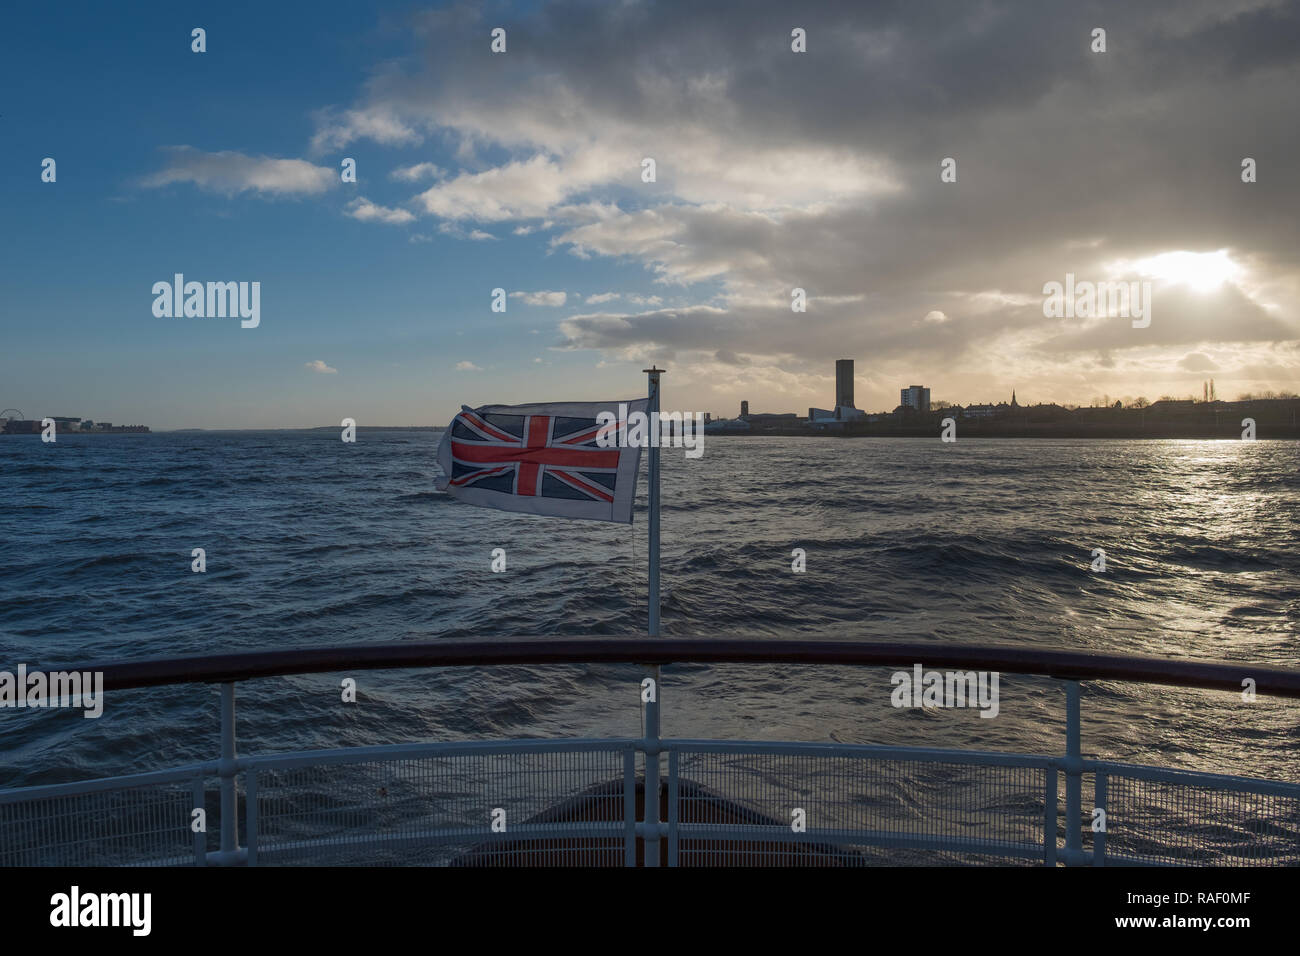 Onboard the Royal Iris of the Mersey ferry, on the River Mersey approaching Seacombe Ferry Terminal, Wallasey - Stock Image